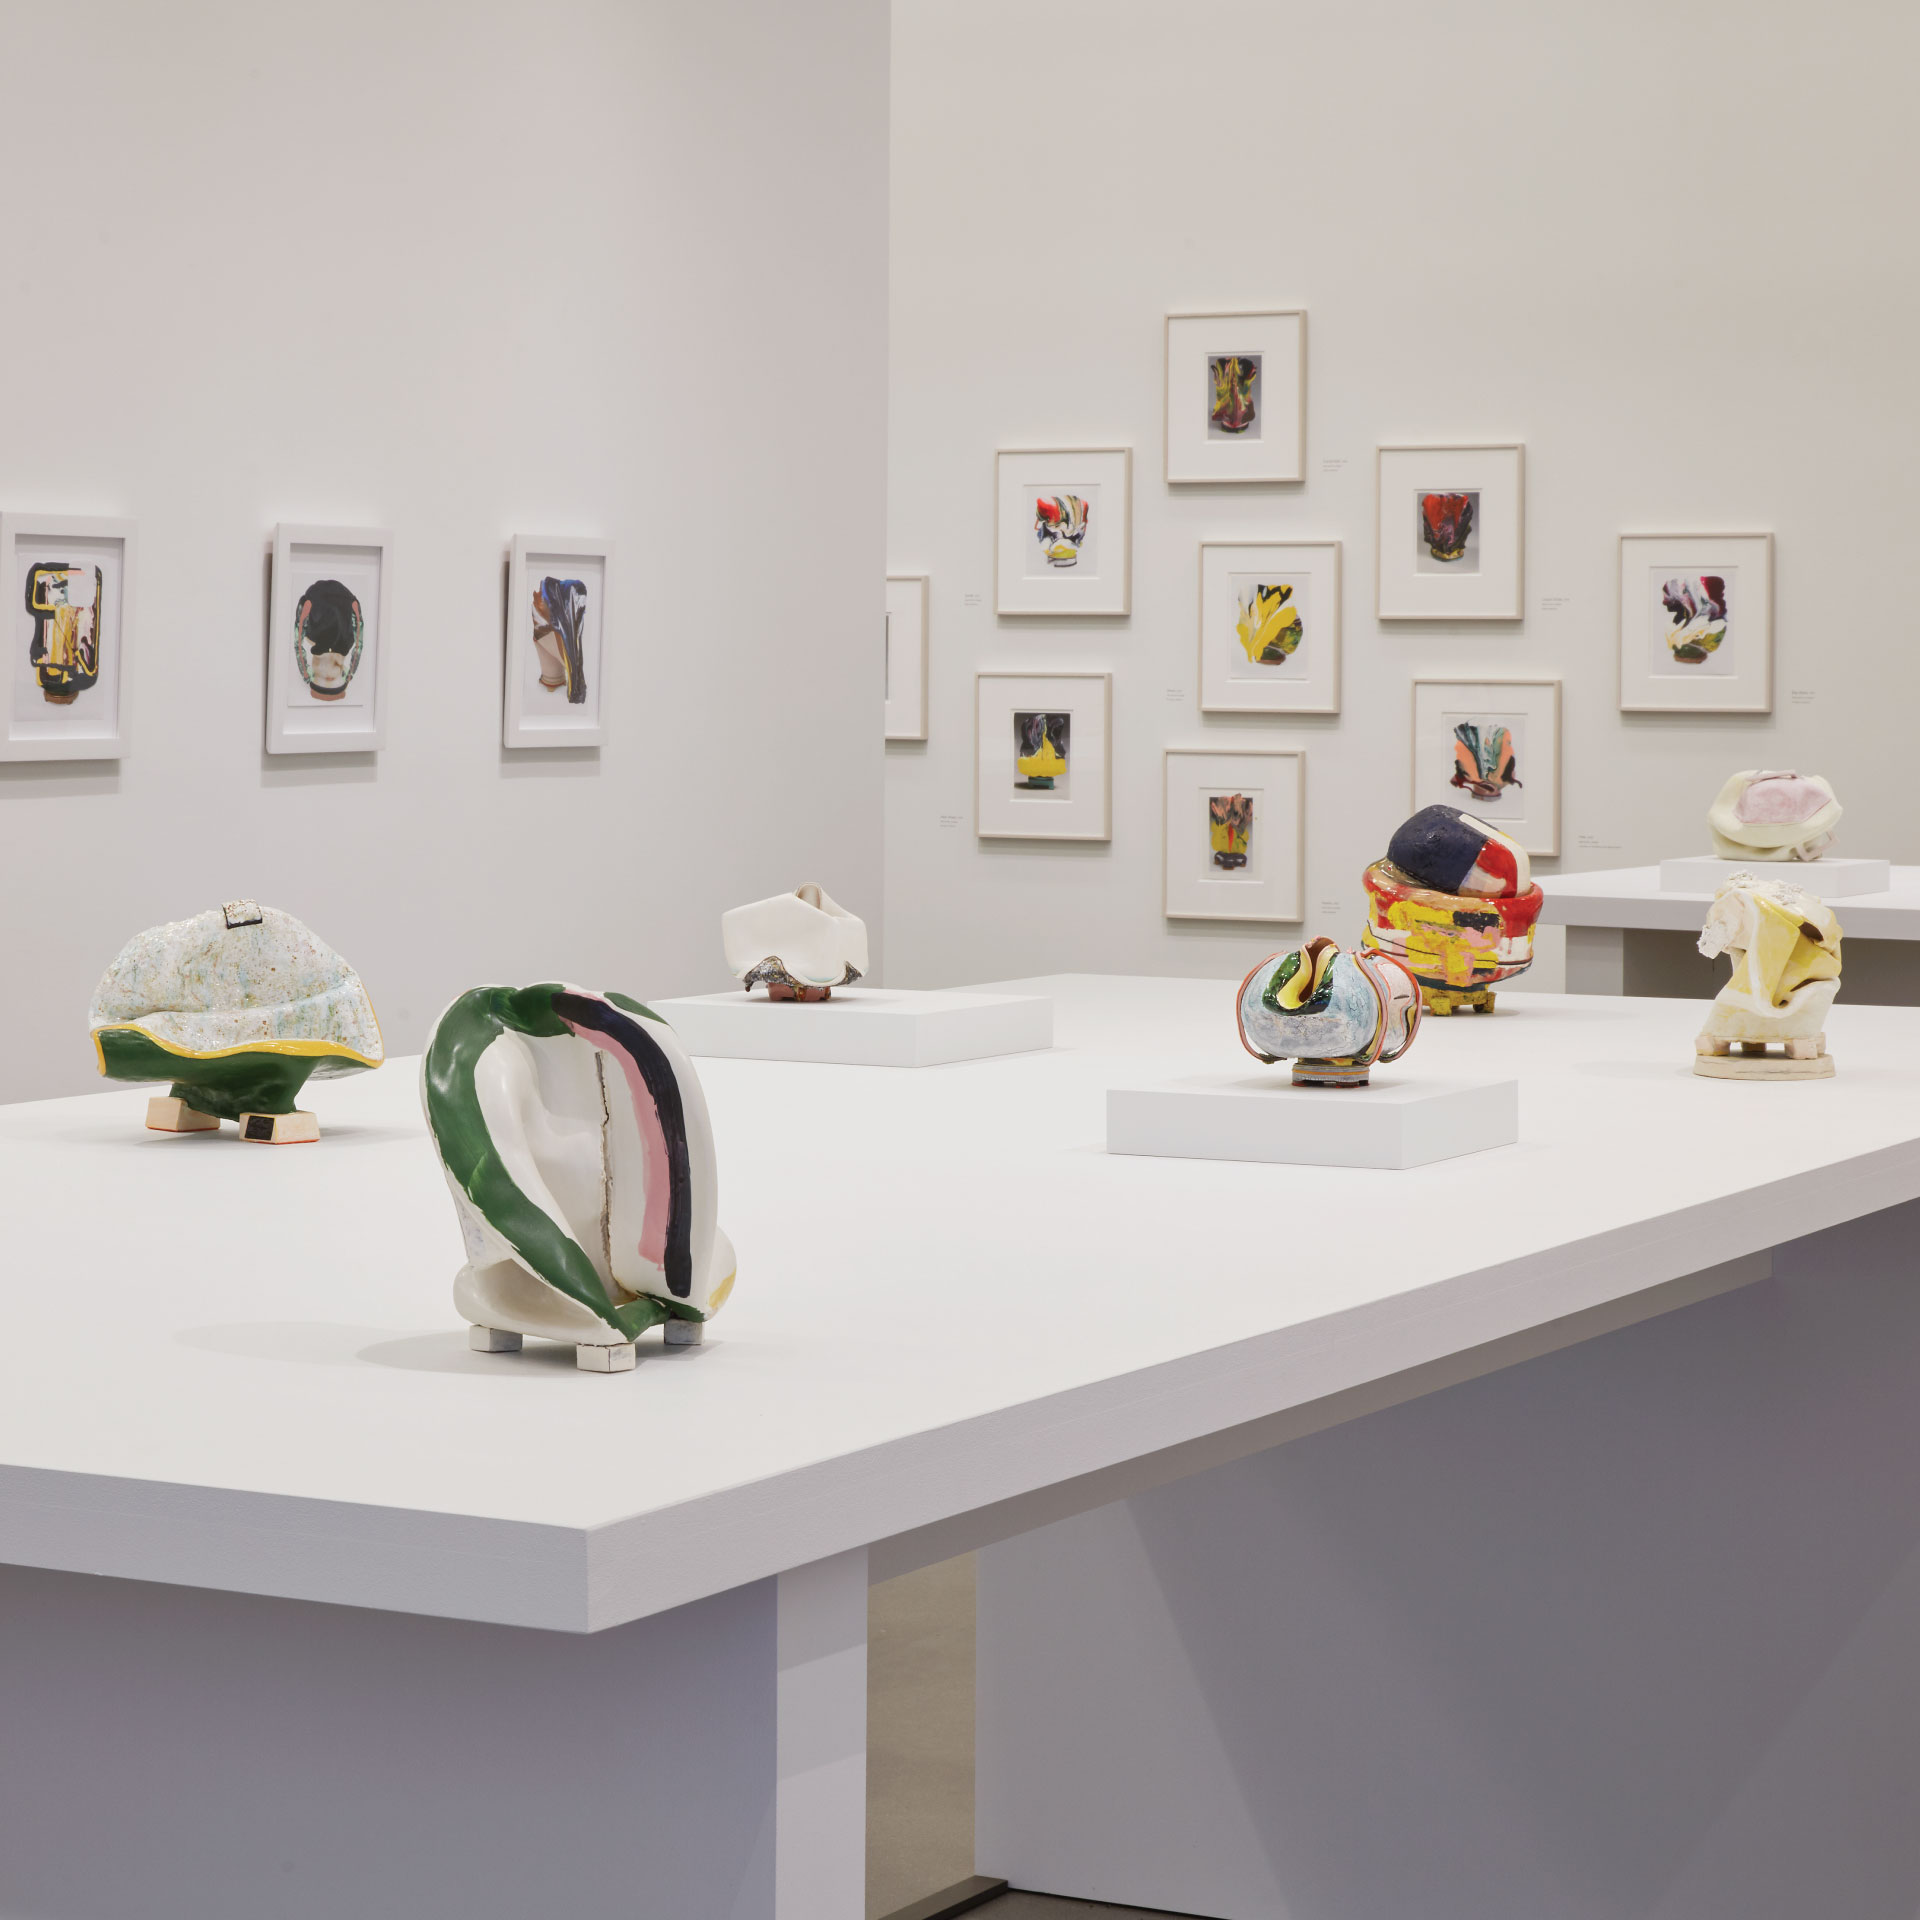 Installation view of Butterly's exhibition at the museum.